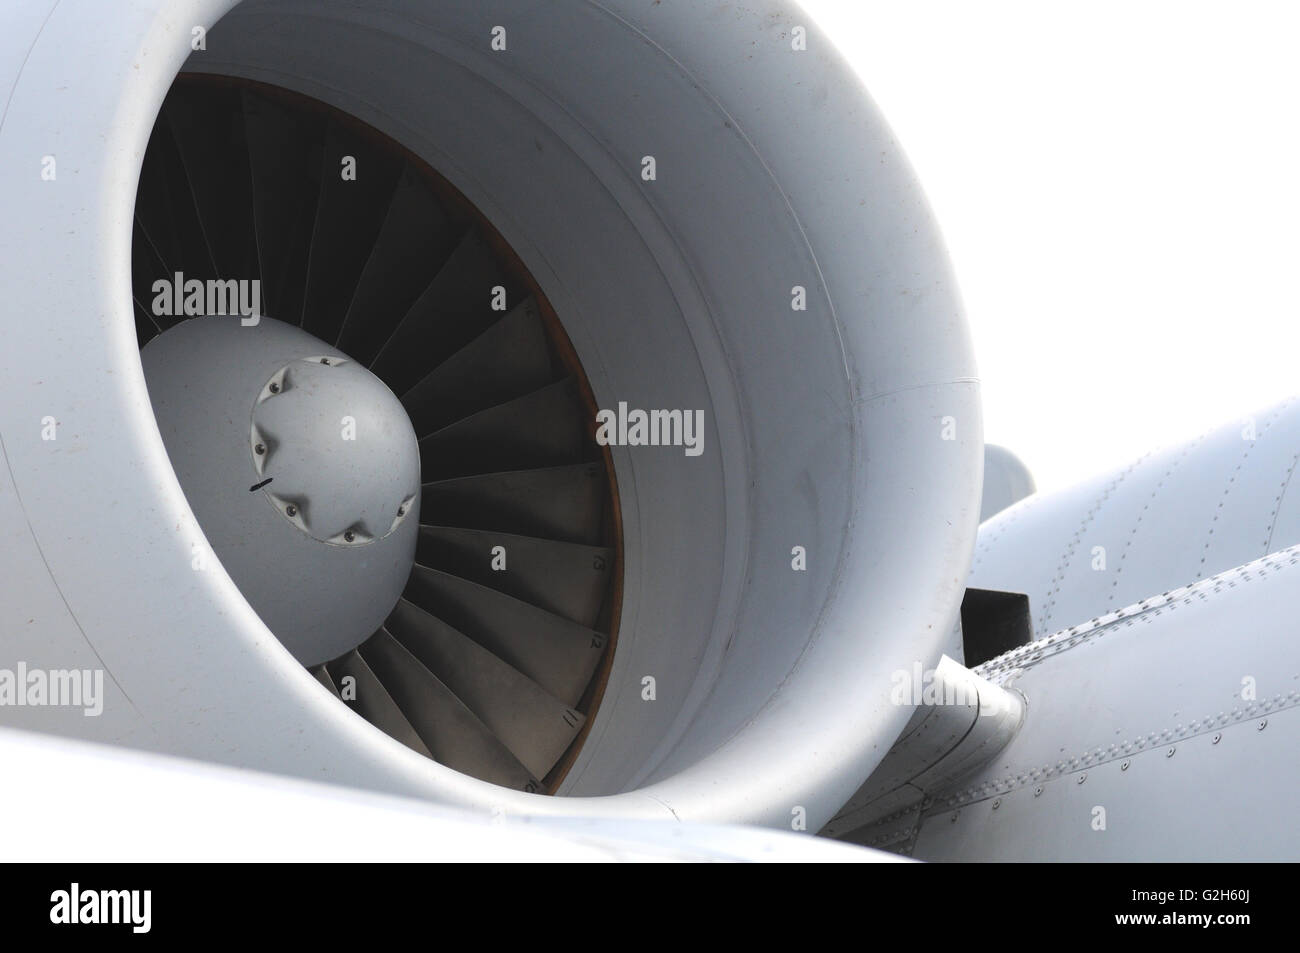 A-10 Thunderbolt jet engine - Stock Image